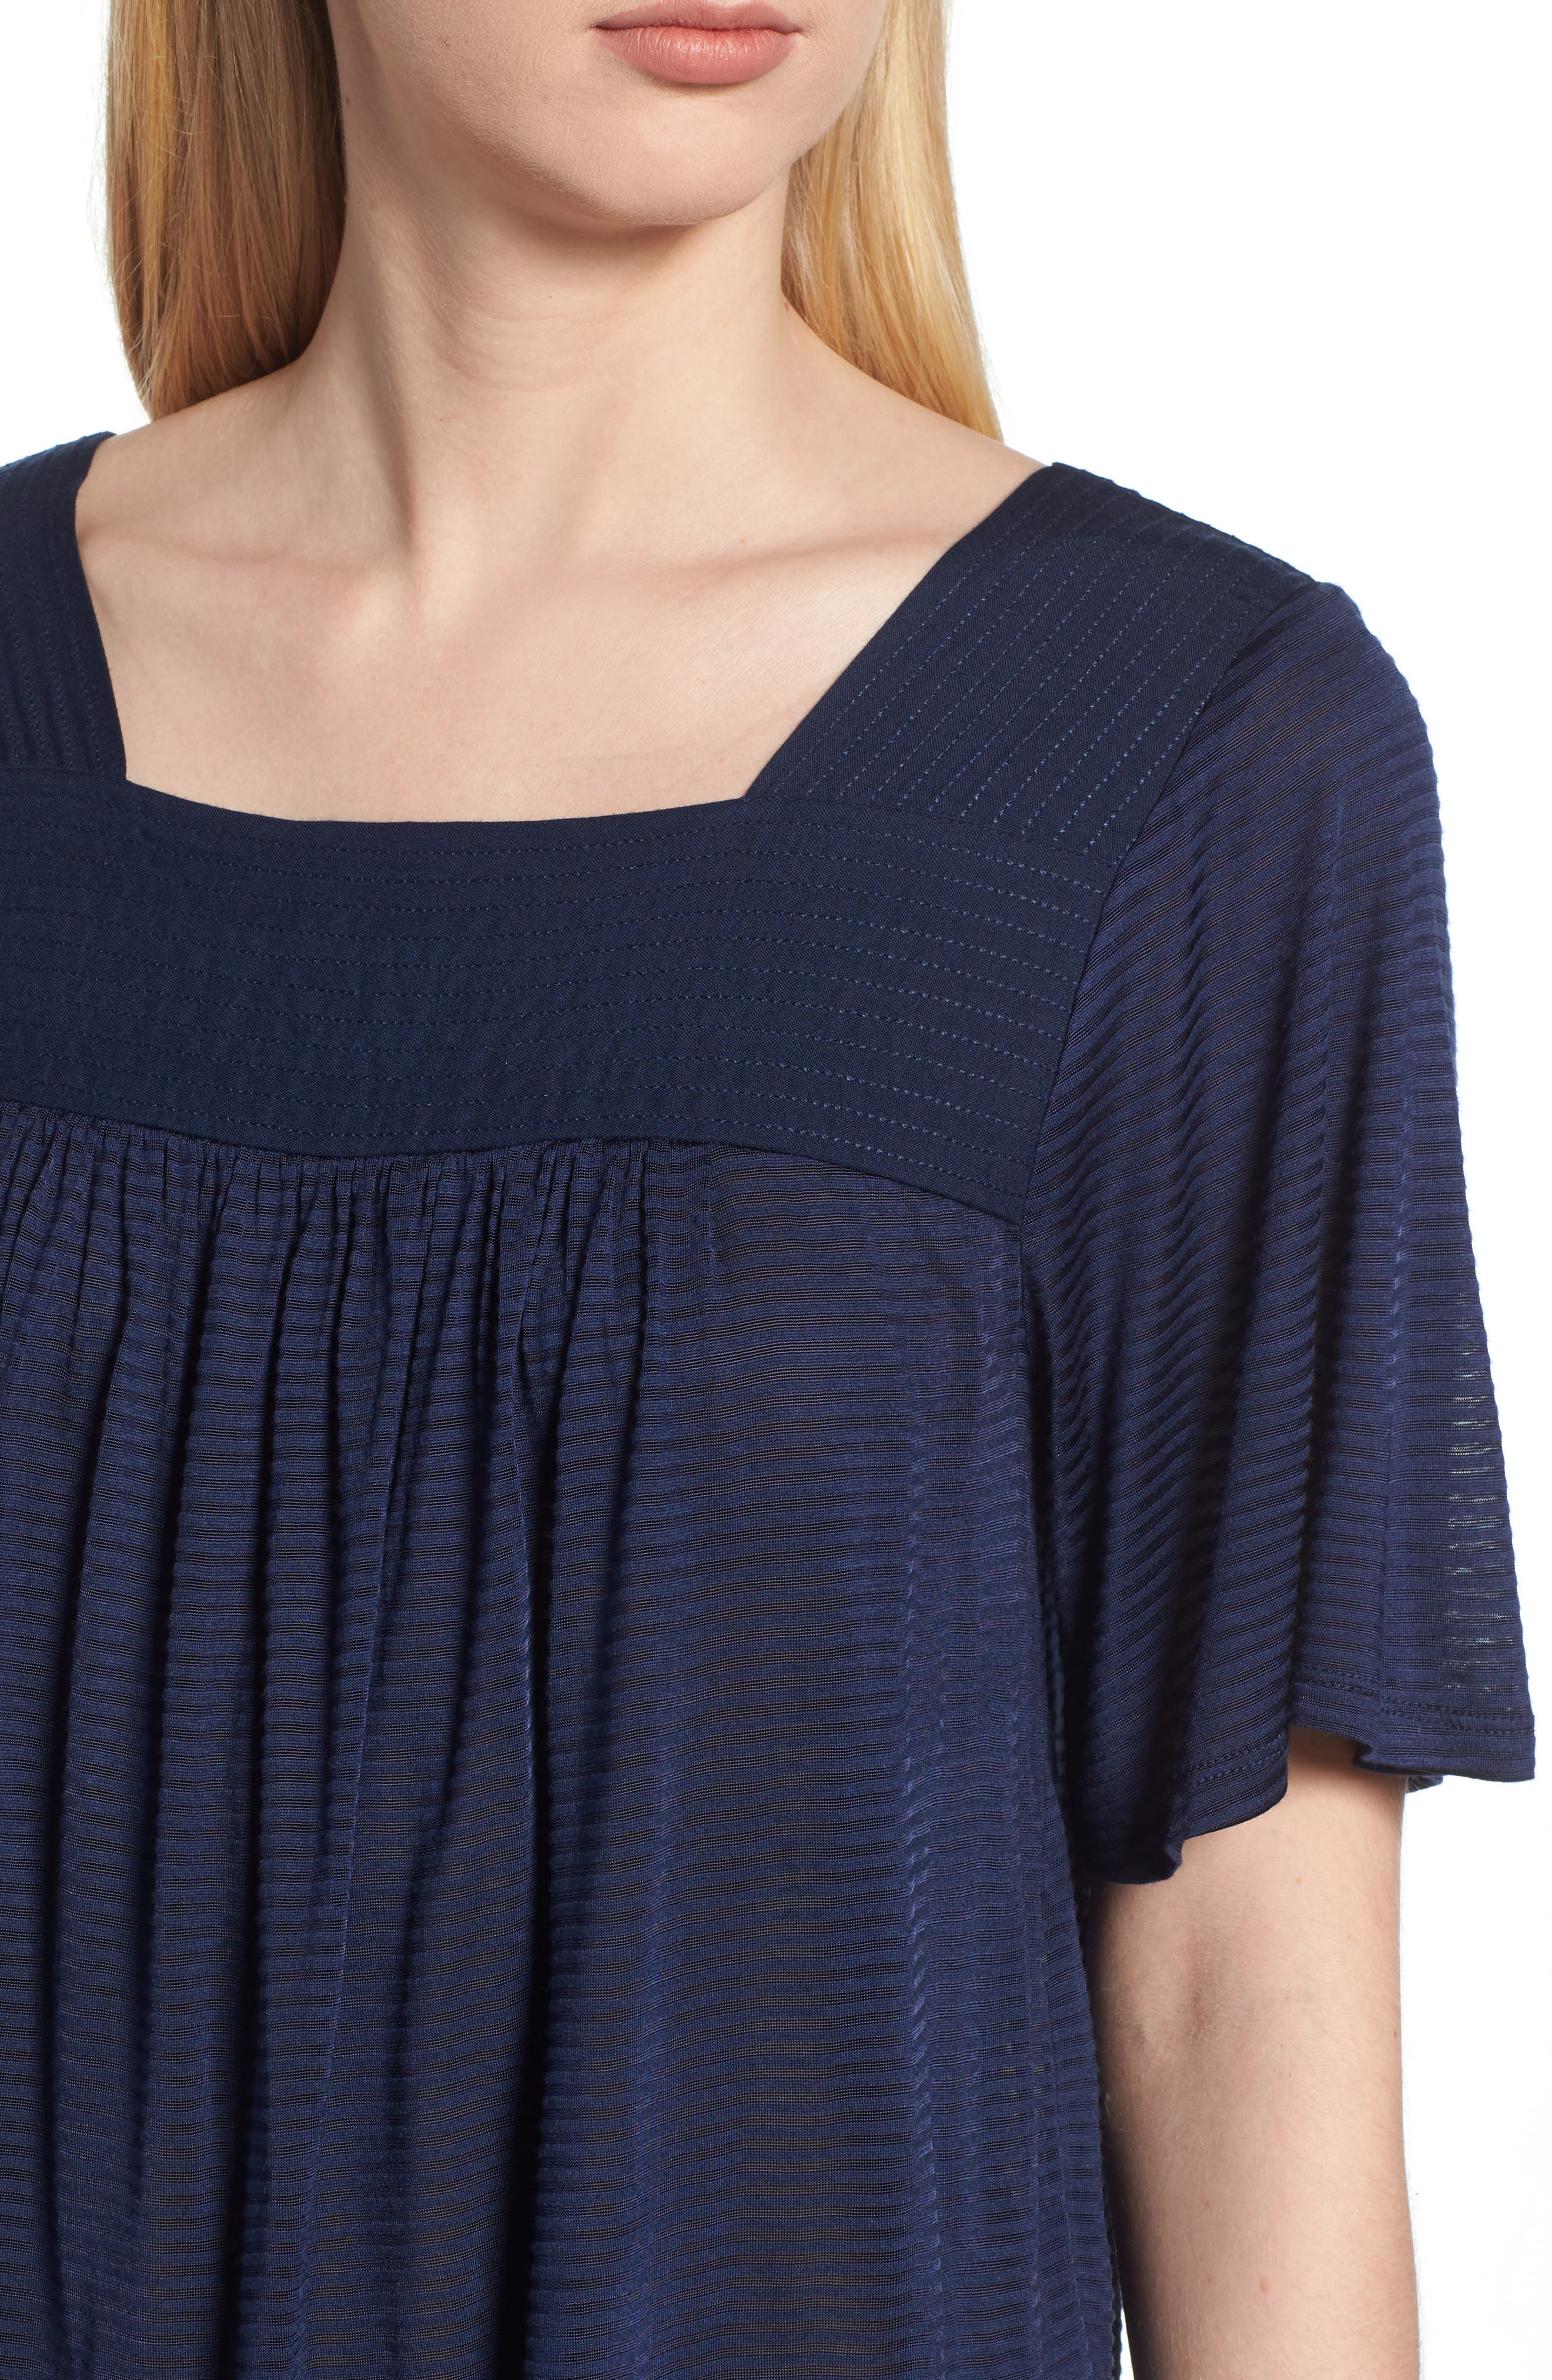 LUCKY BRAND, Shadow Stripe Peasant Top, Alternate thumbnail 4, color, AMERICAN NAVY